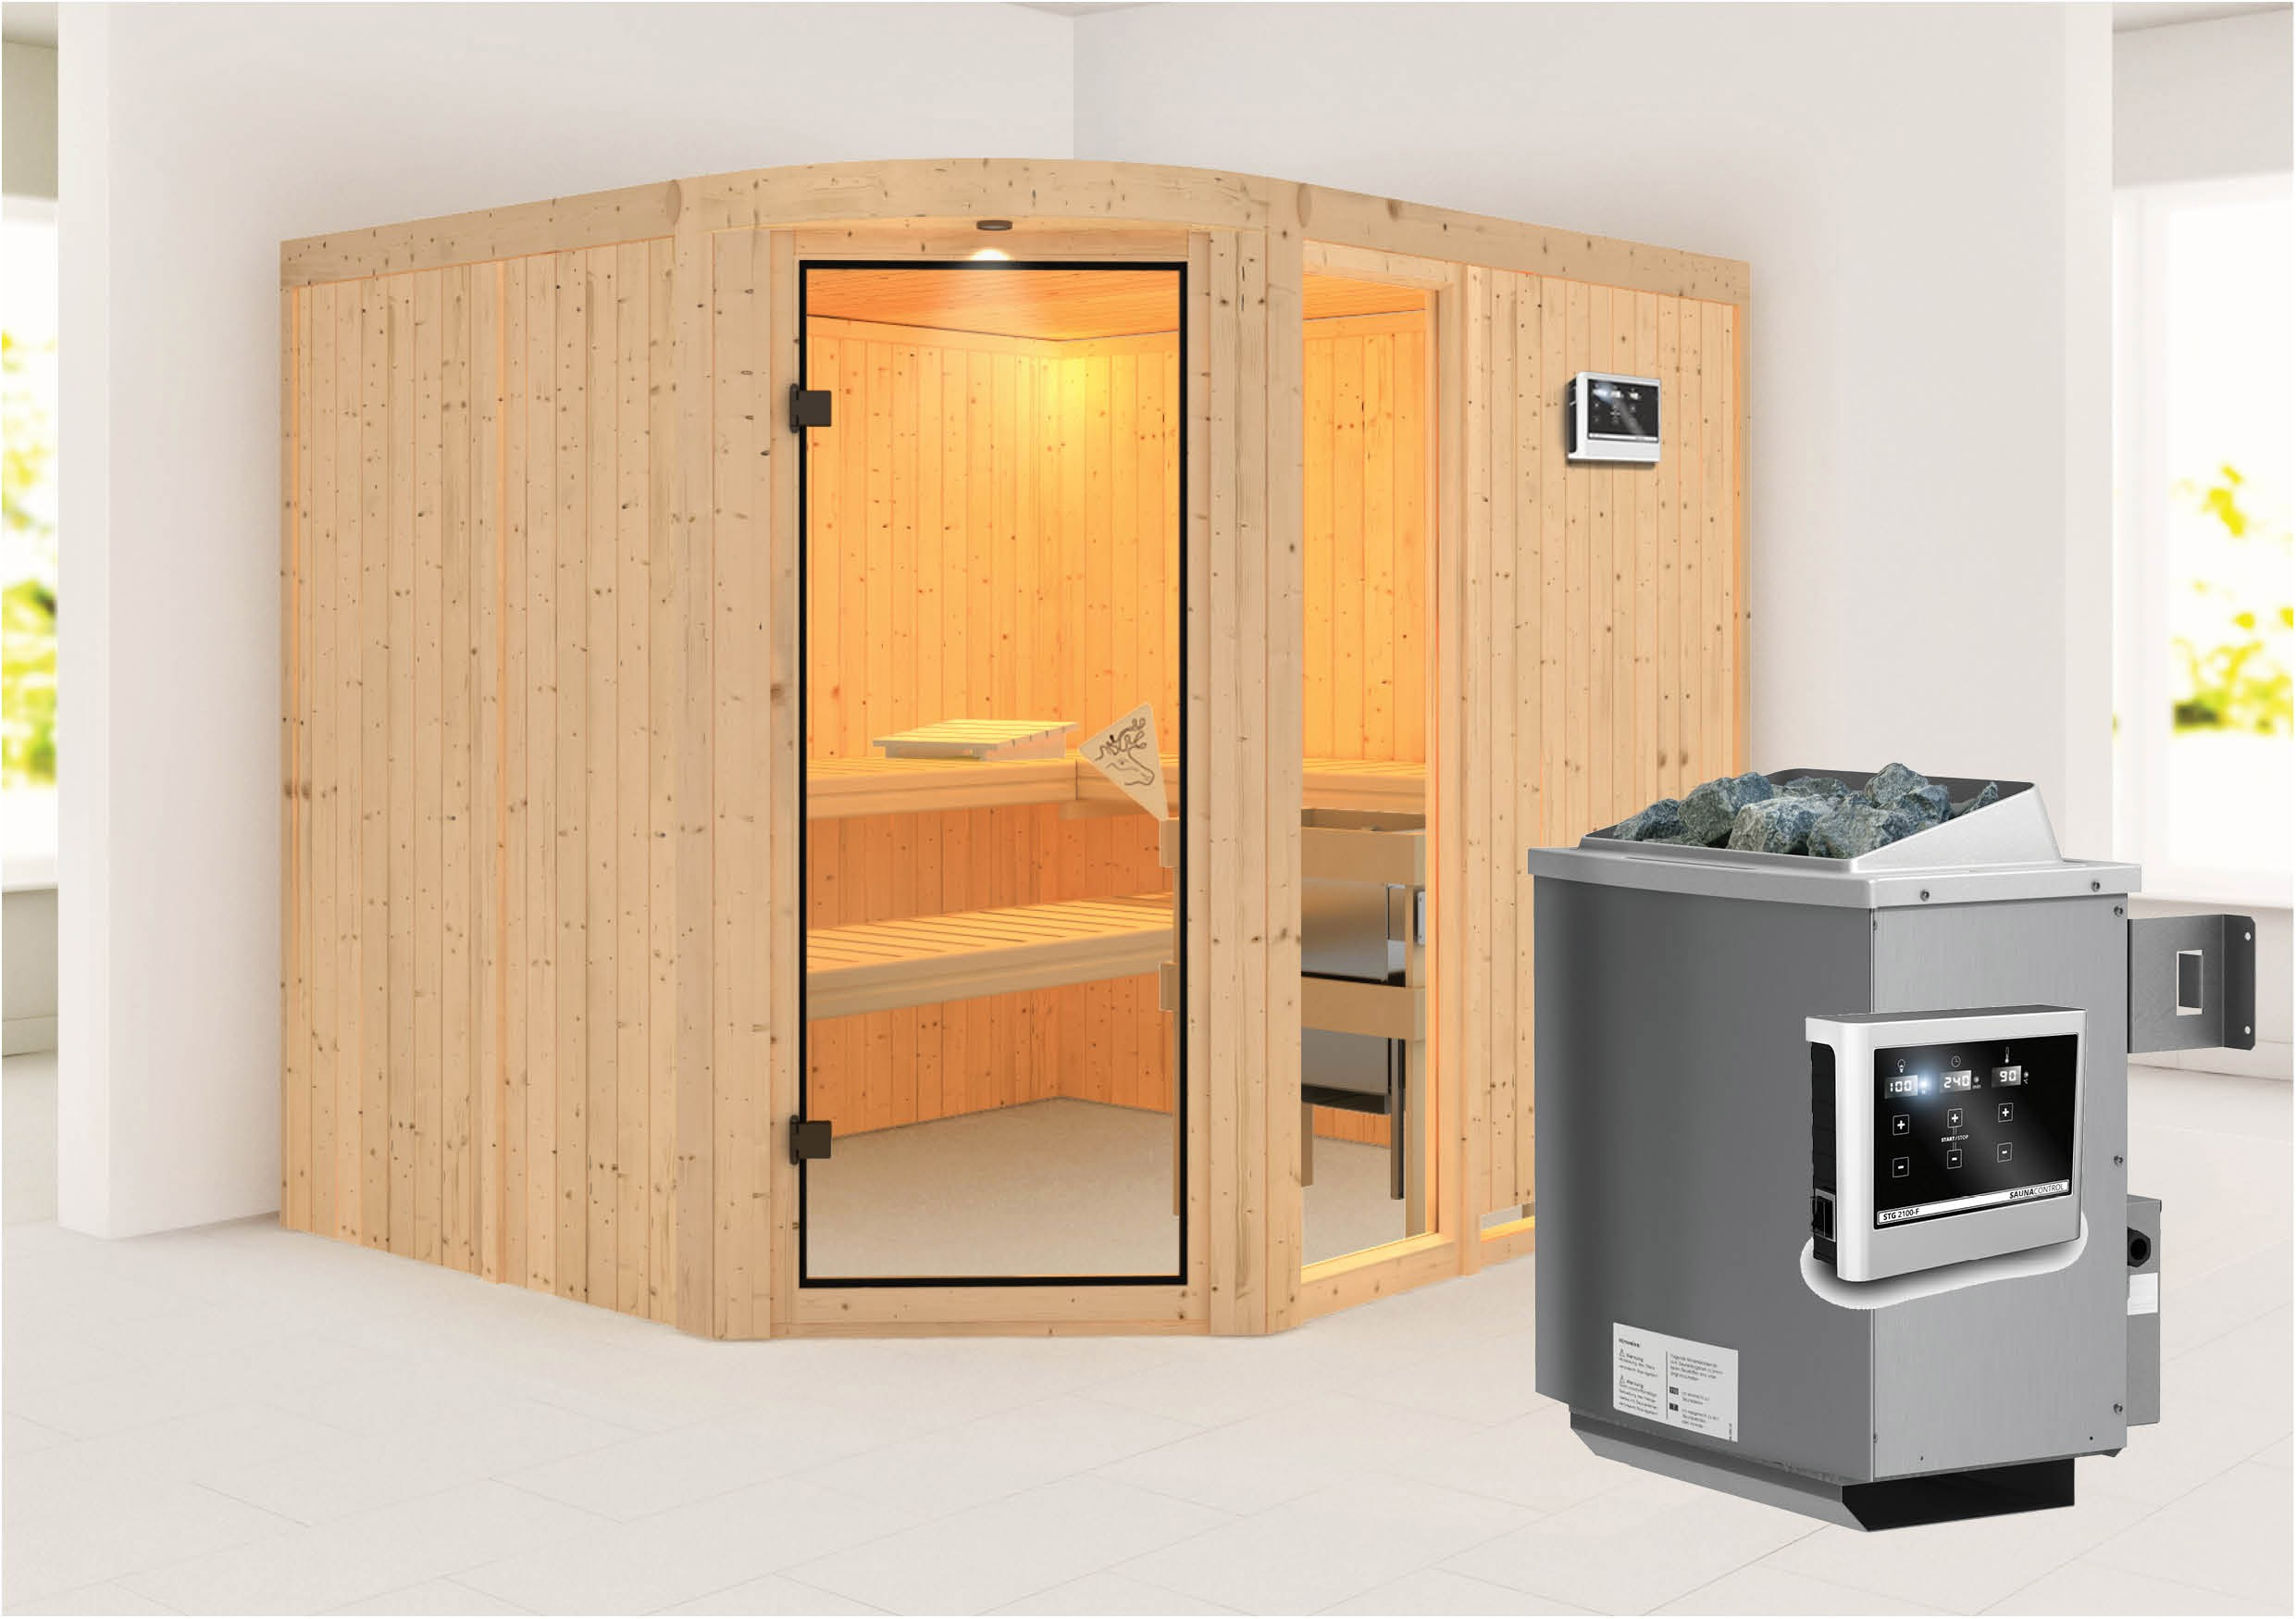 karibu sauna lakura 68mm mit ofen 9kw extern classic t r bei. Black Bedroom Furniture Sets. Home Design Ideas